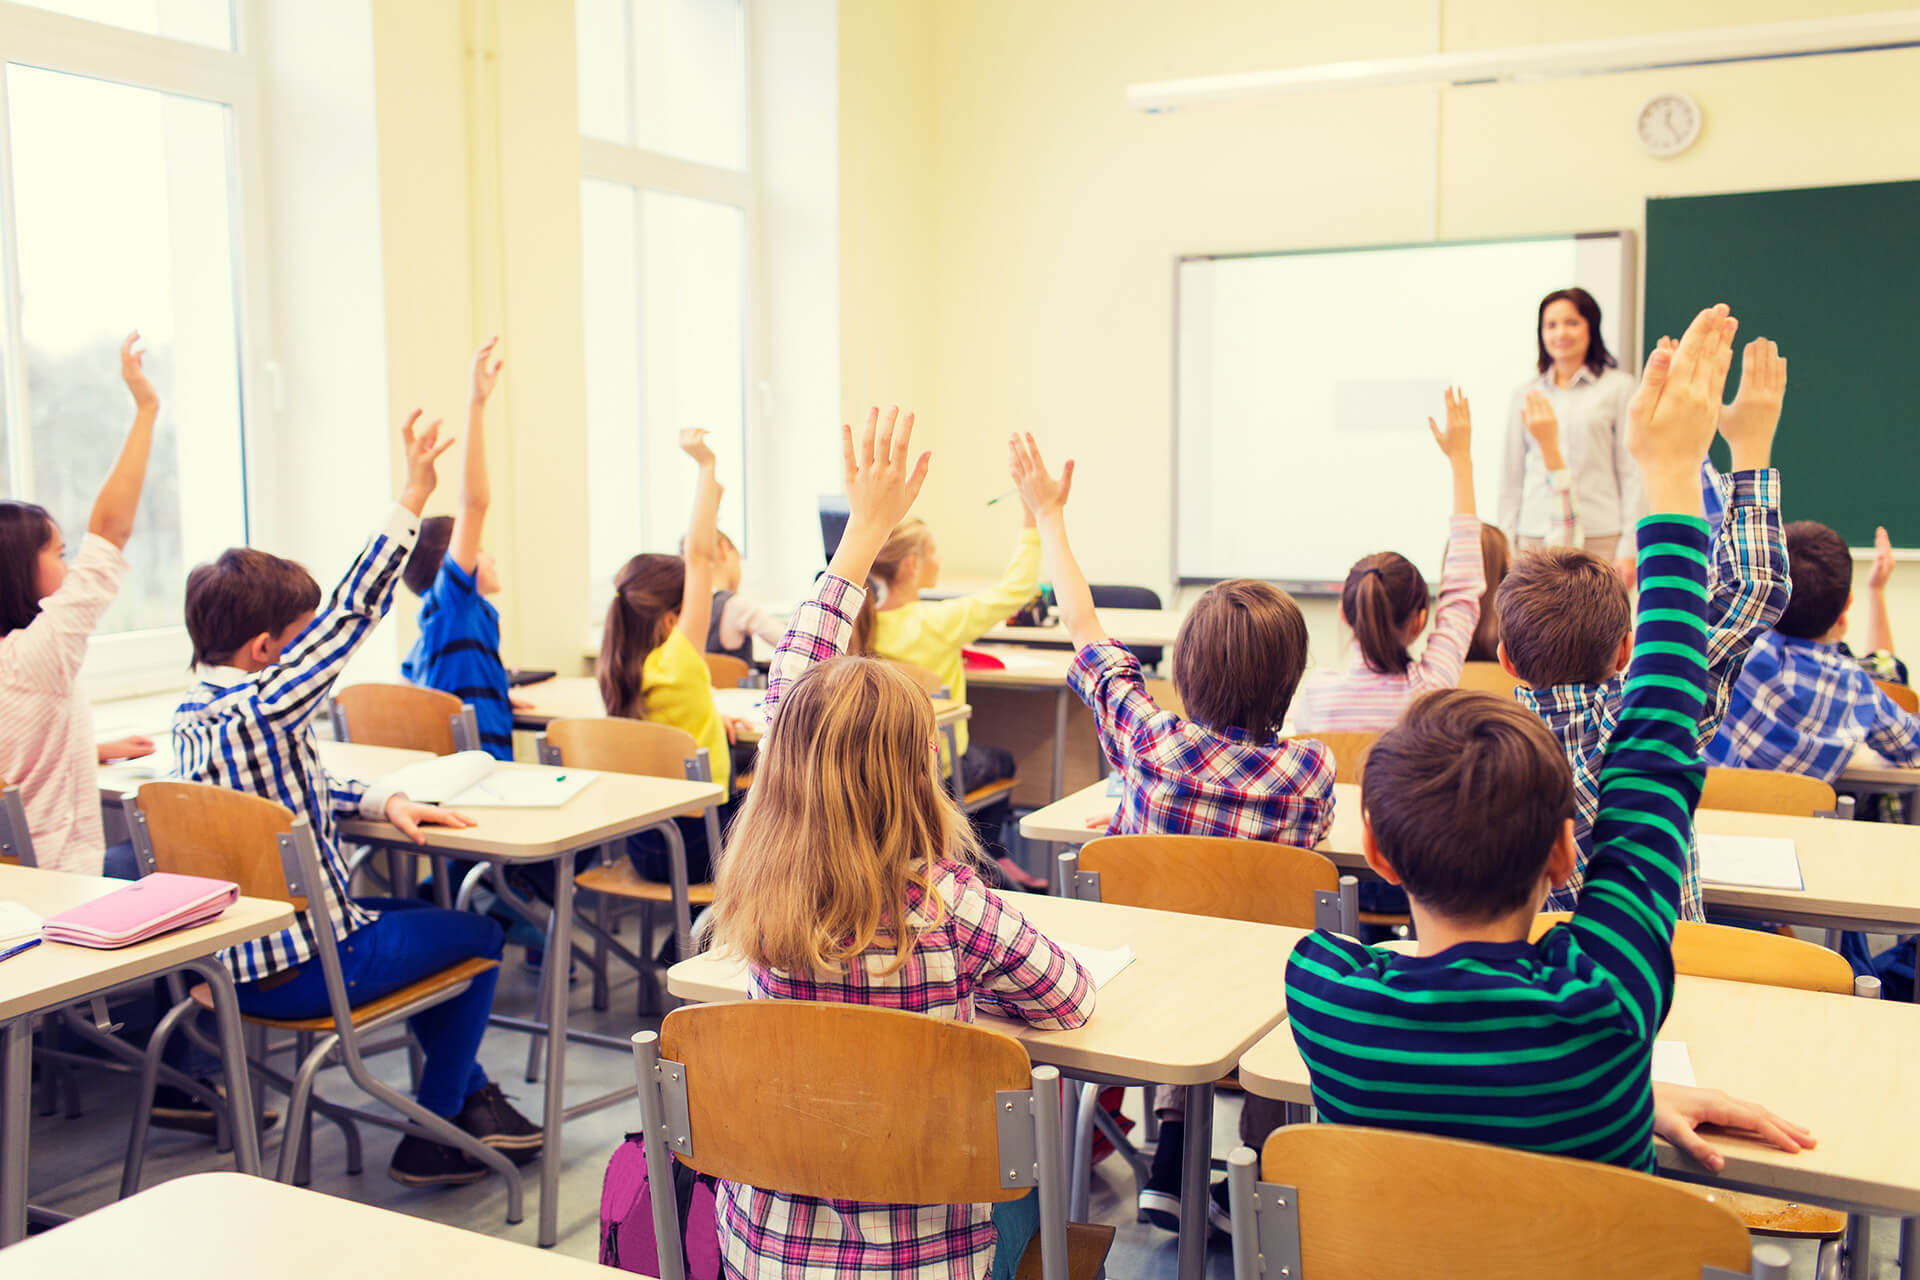 Elementary students raising hand in class.